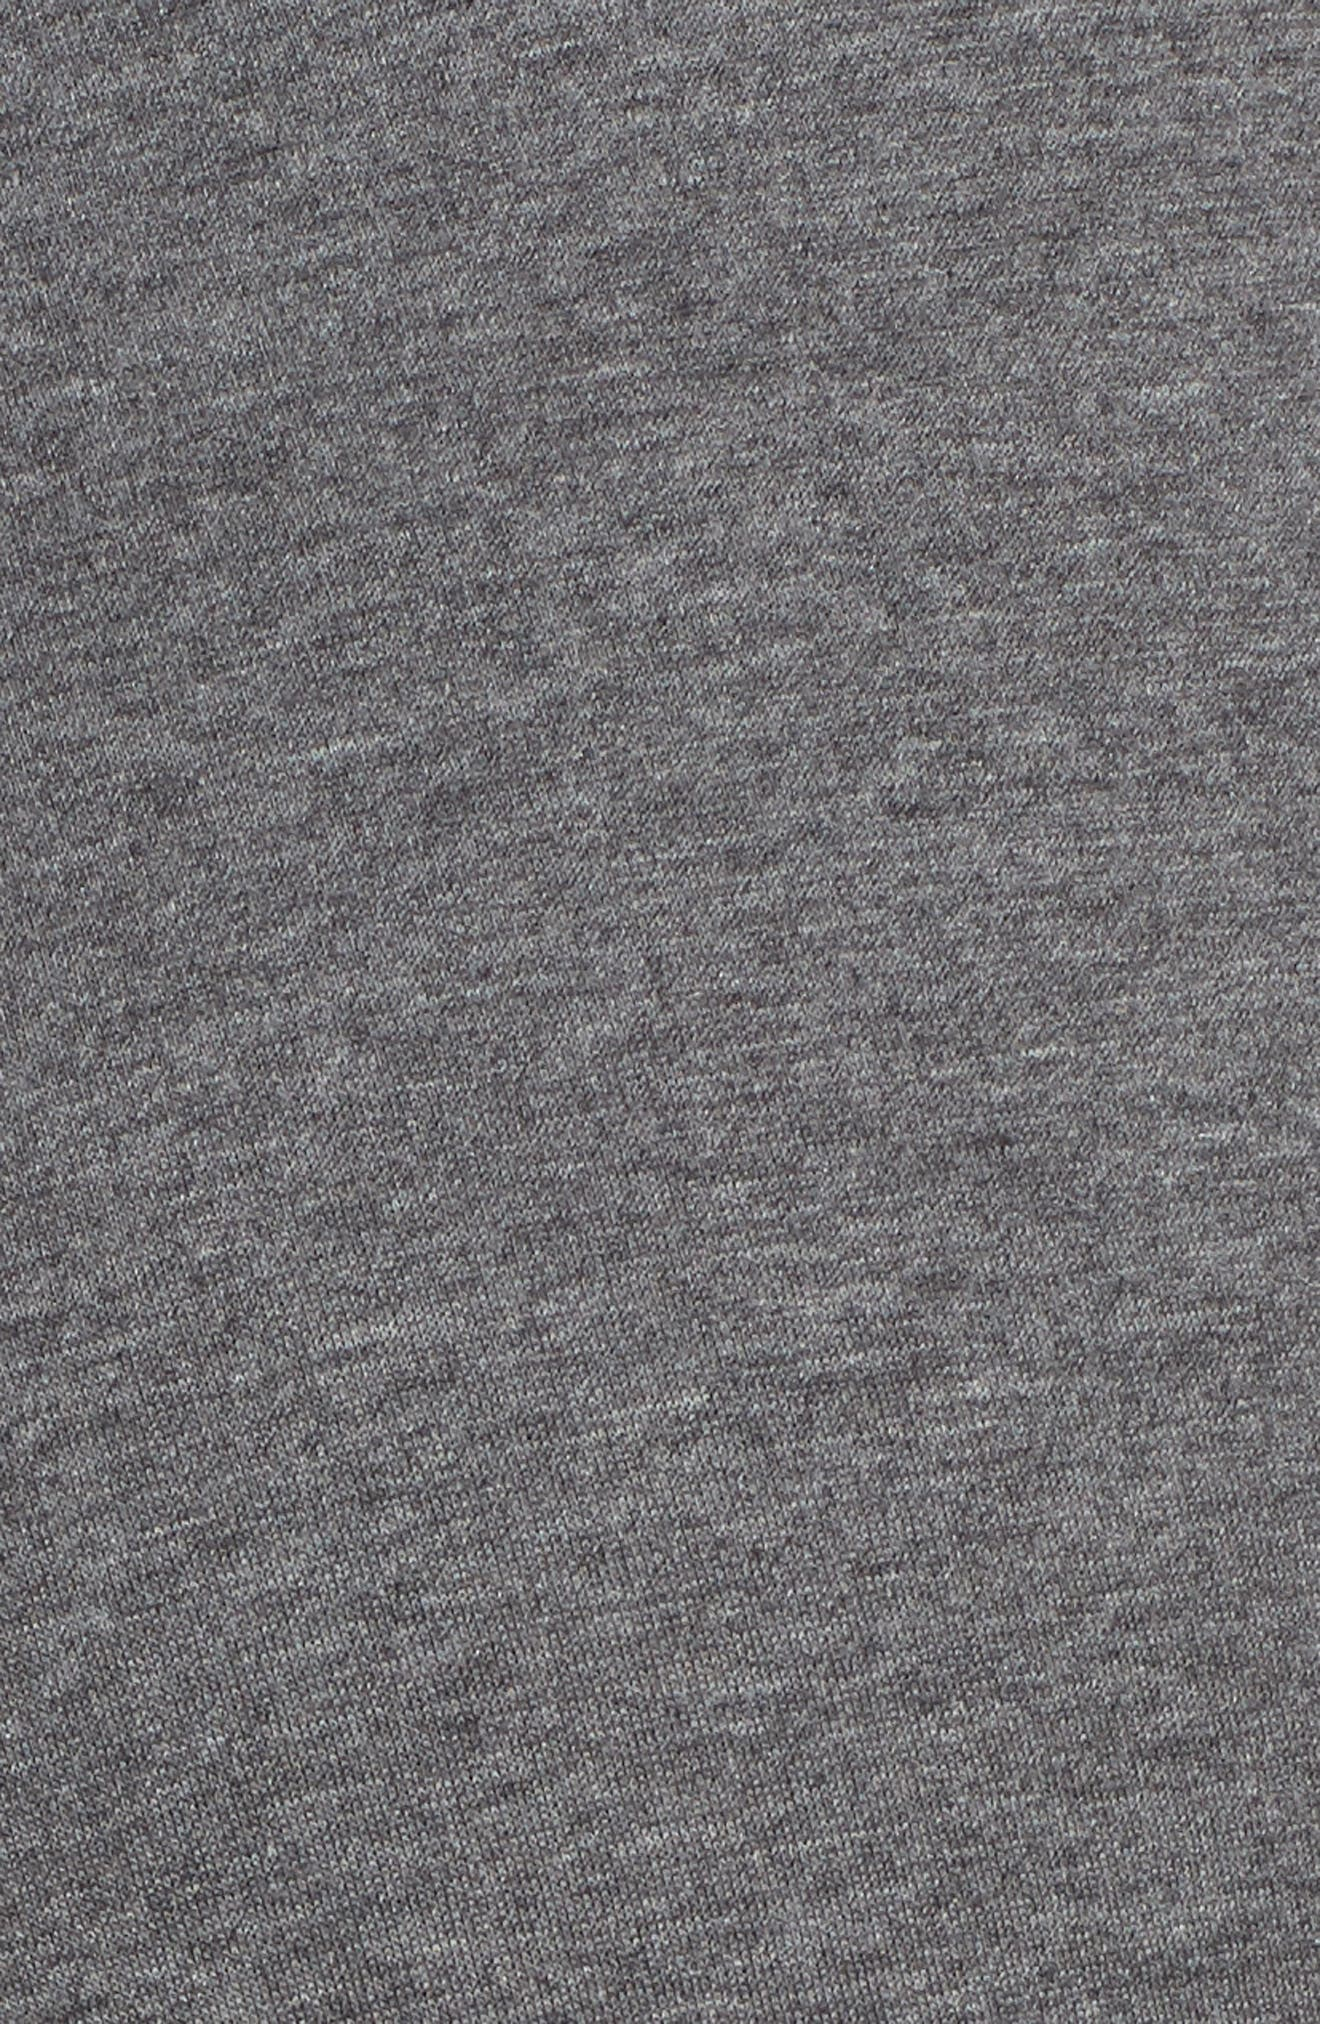 Heathered Cotton Blend Leggings,                             Alternate thumbnail 5, color,                             HEATHER CHARCOAL